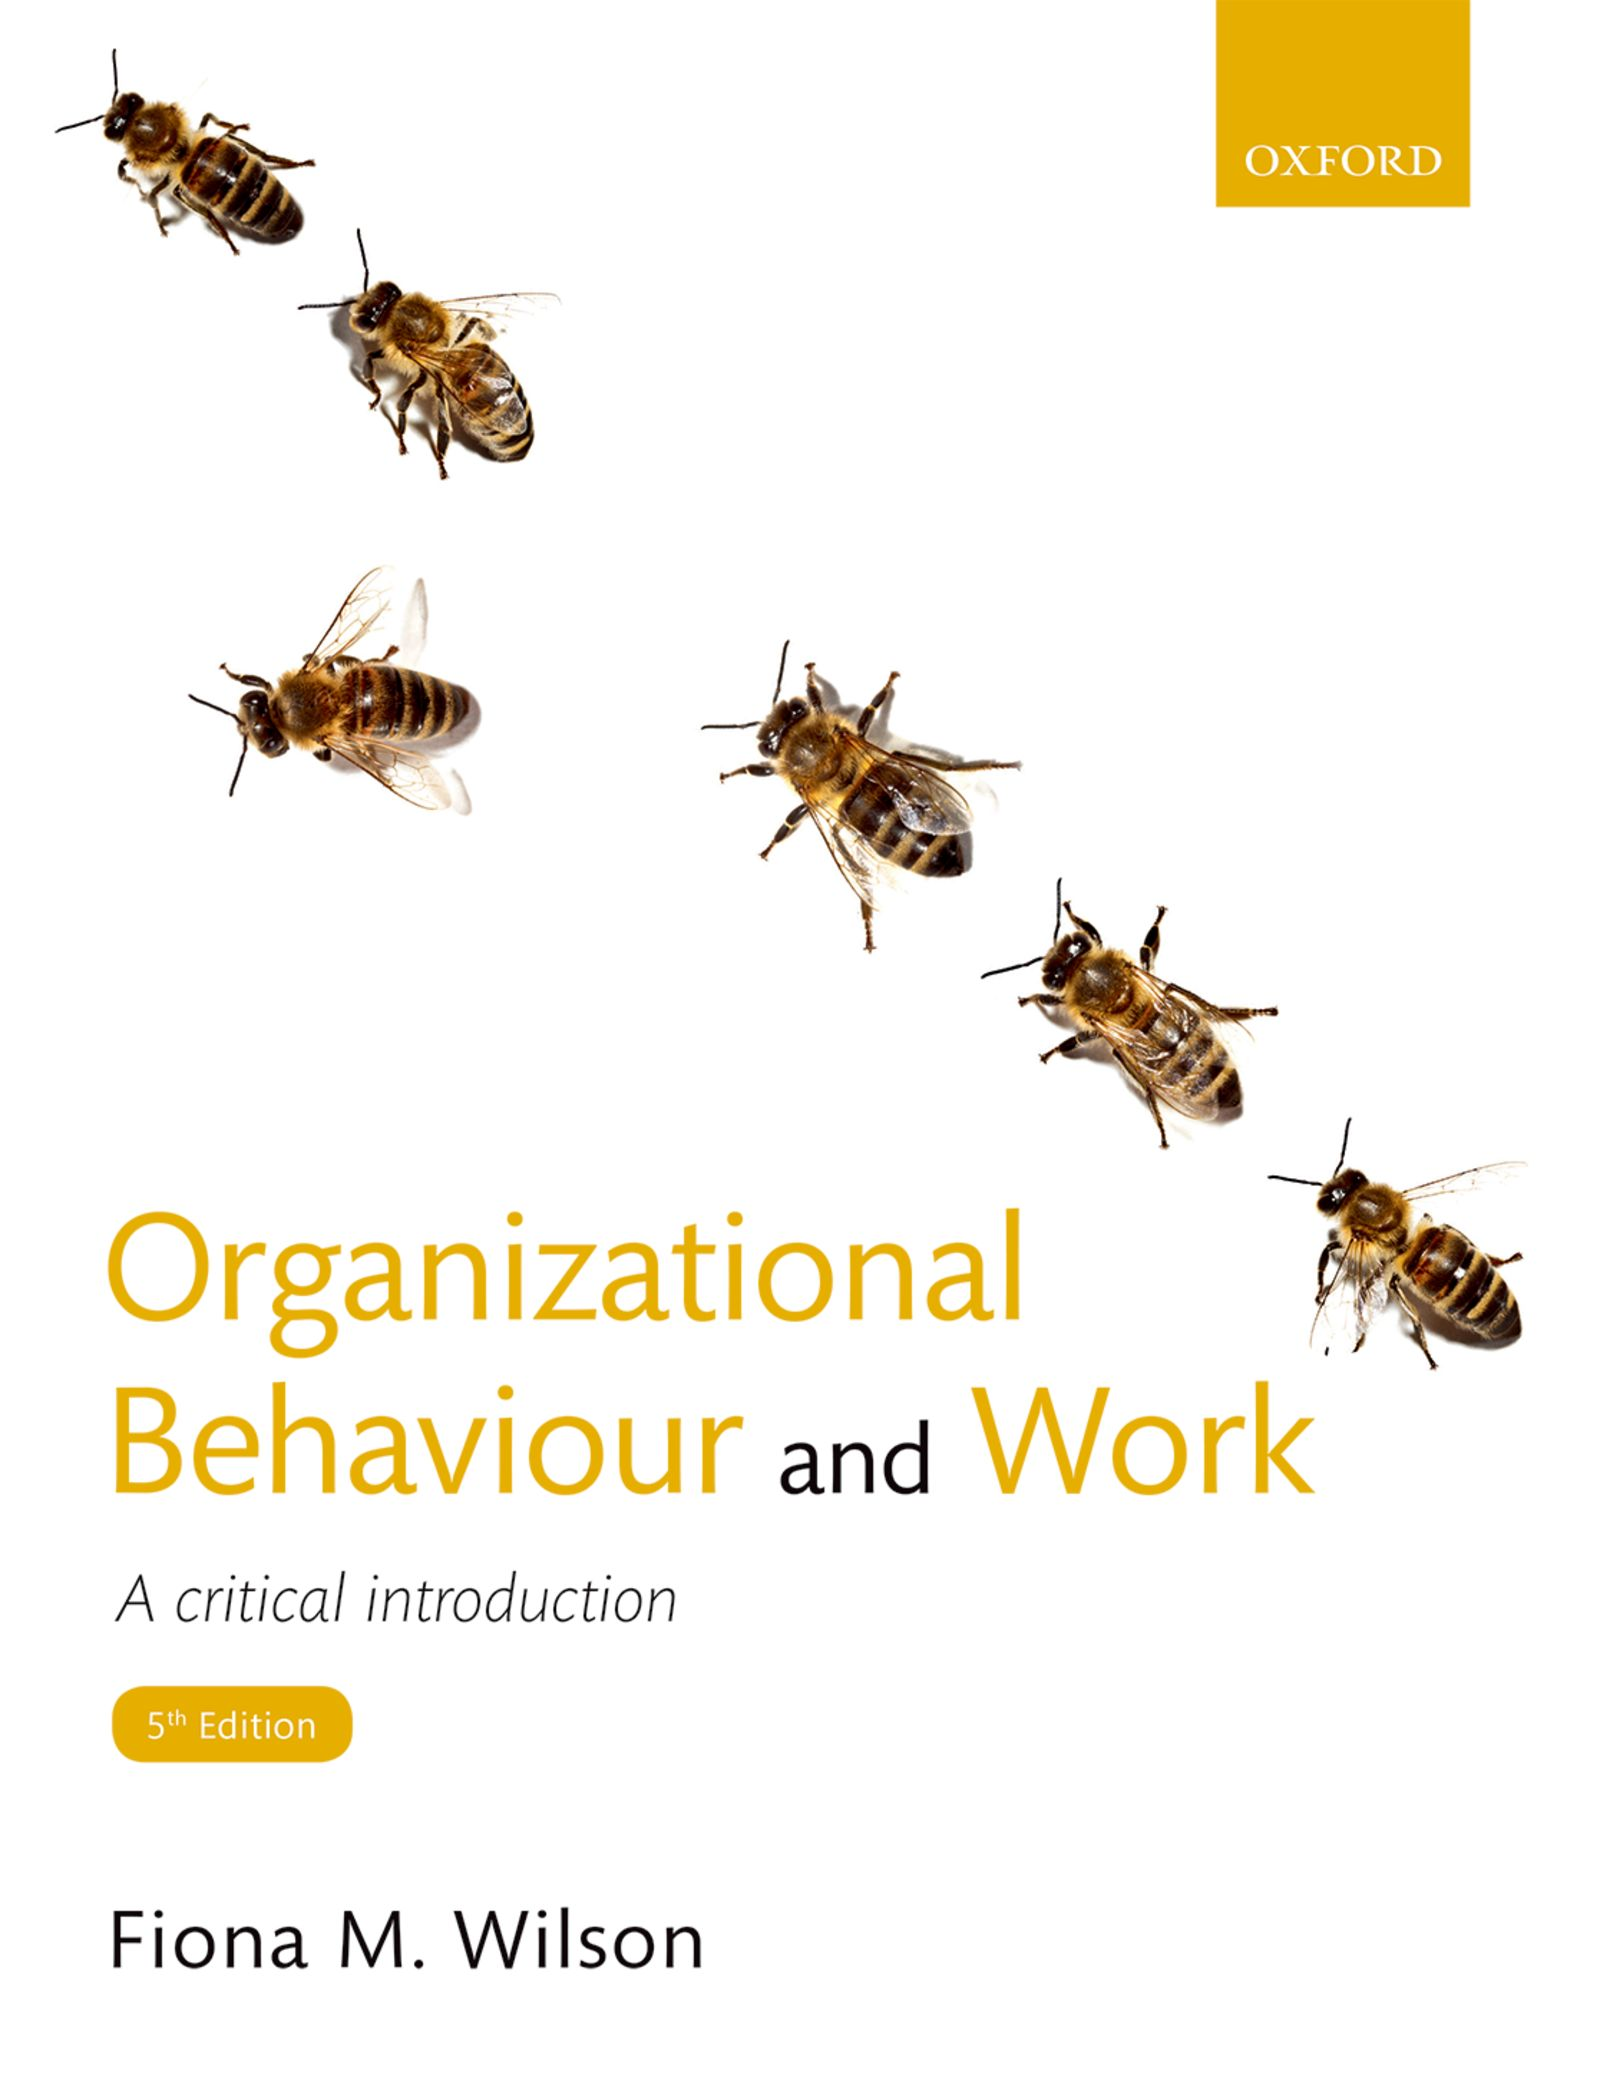 Organizational Behaviour and Work 5e Student Resources